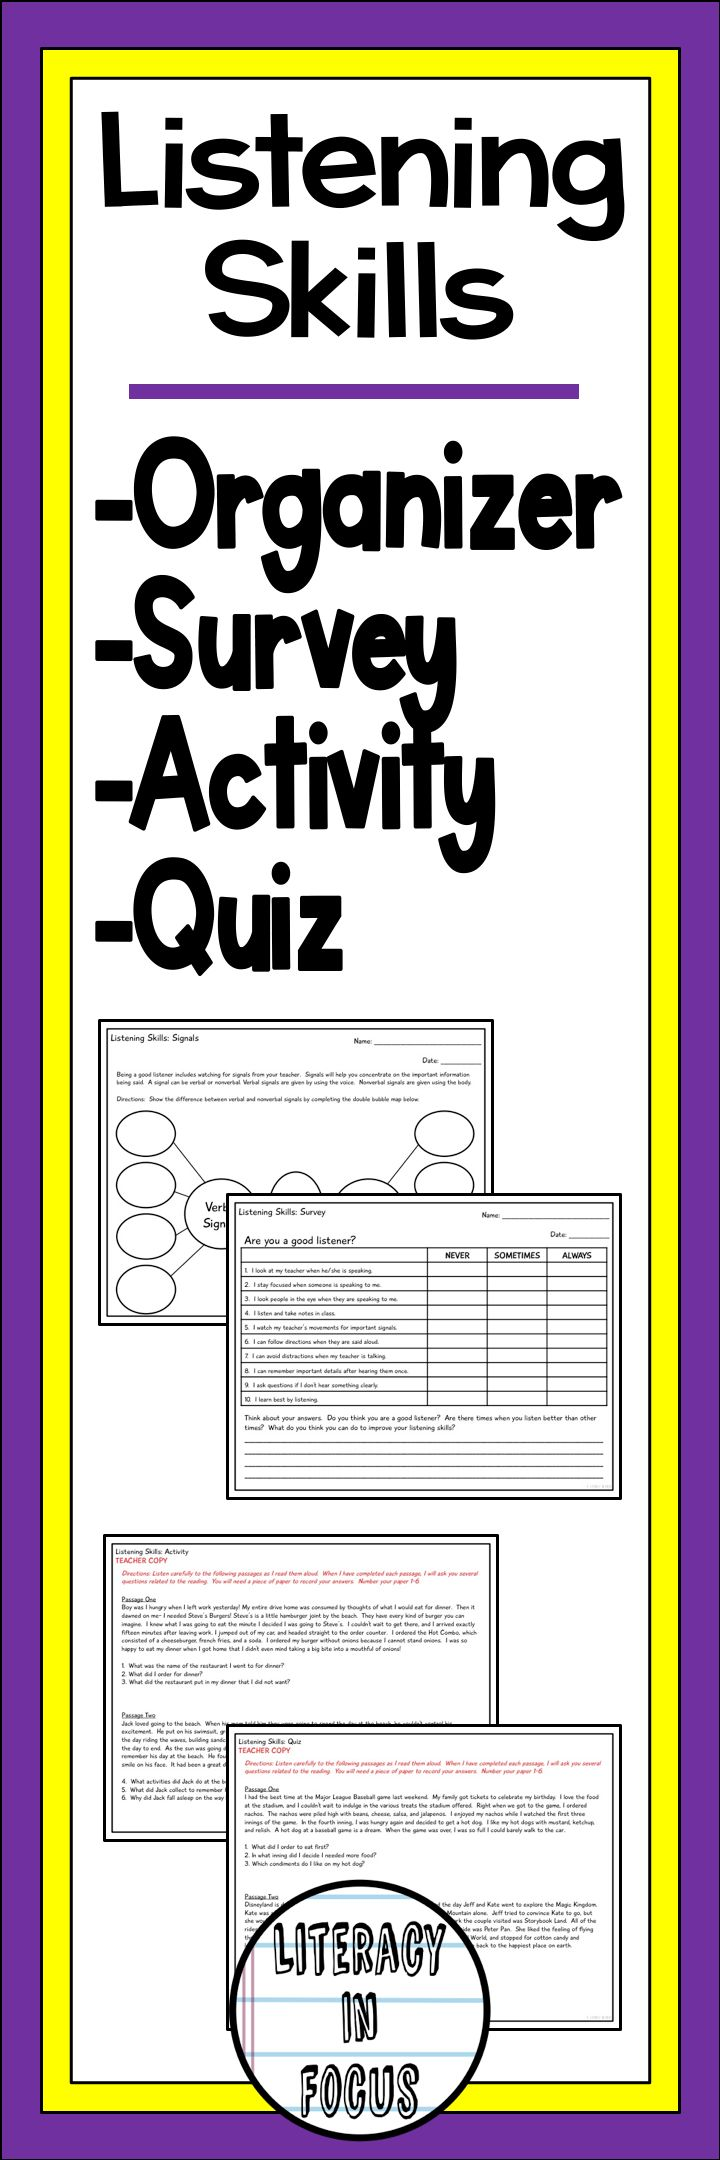 Everything you need to teach and assess listening skills including a graphic organizer, survey, activity, and assessment! After completing this unit, you will have a better idea of which students need additional help in building their listening skills.